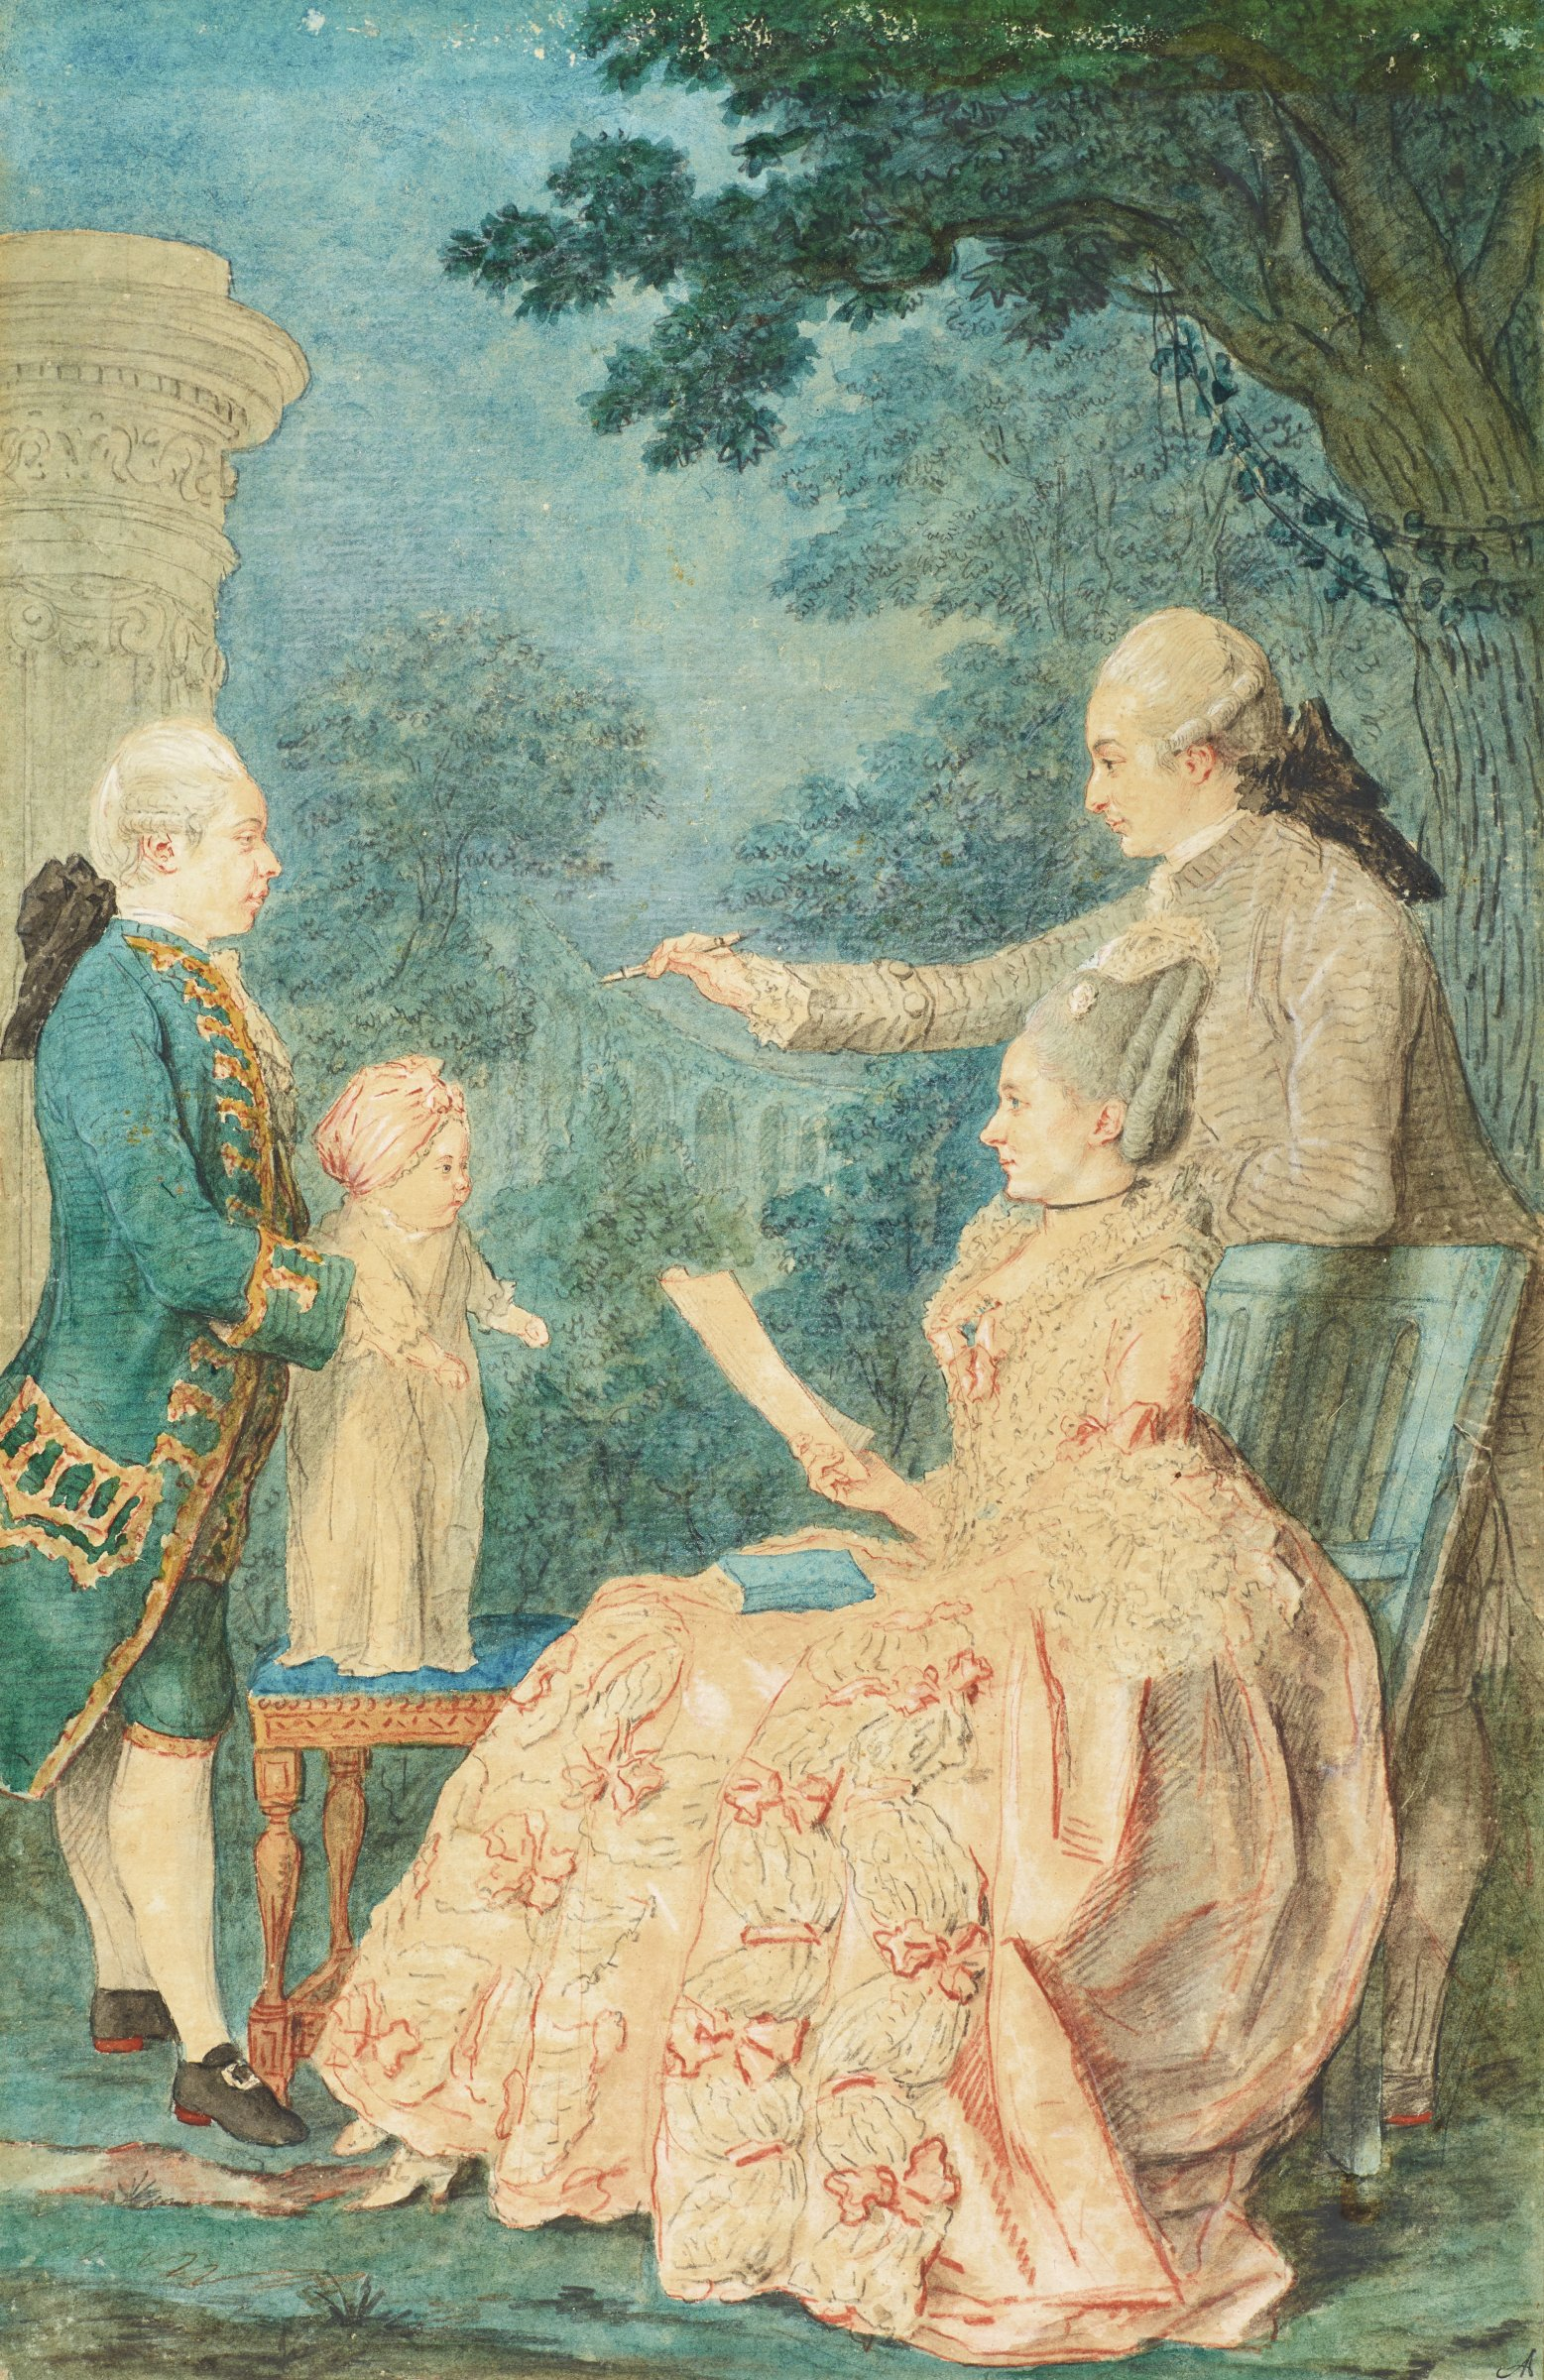 A family is portrayed in profile. On the right, a woman sits in a chair with a book resting in her lap. She holds a sheet of paper in her right hand. A man leans on the back of her chair holding out a writing utensil. On the left, another man stands holding onto a young child that stands on a stool.